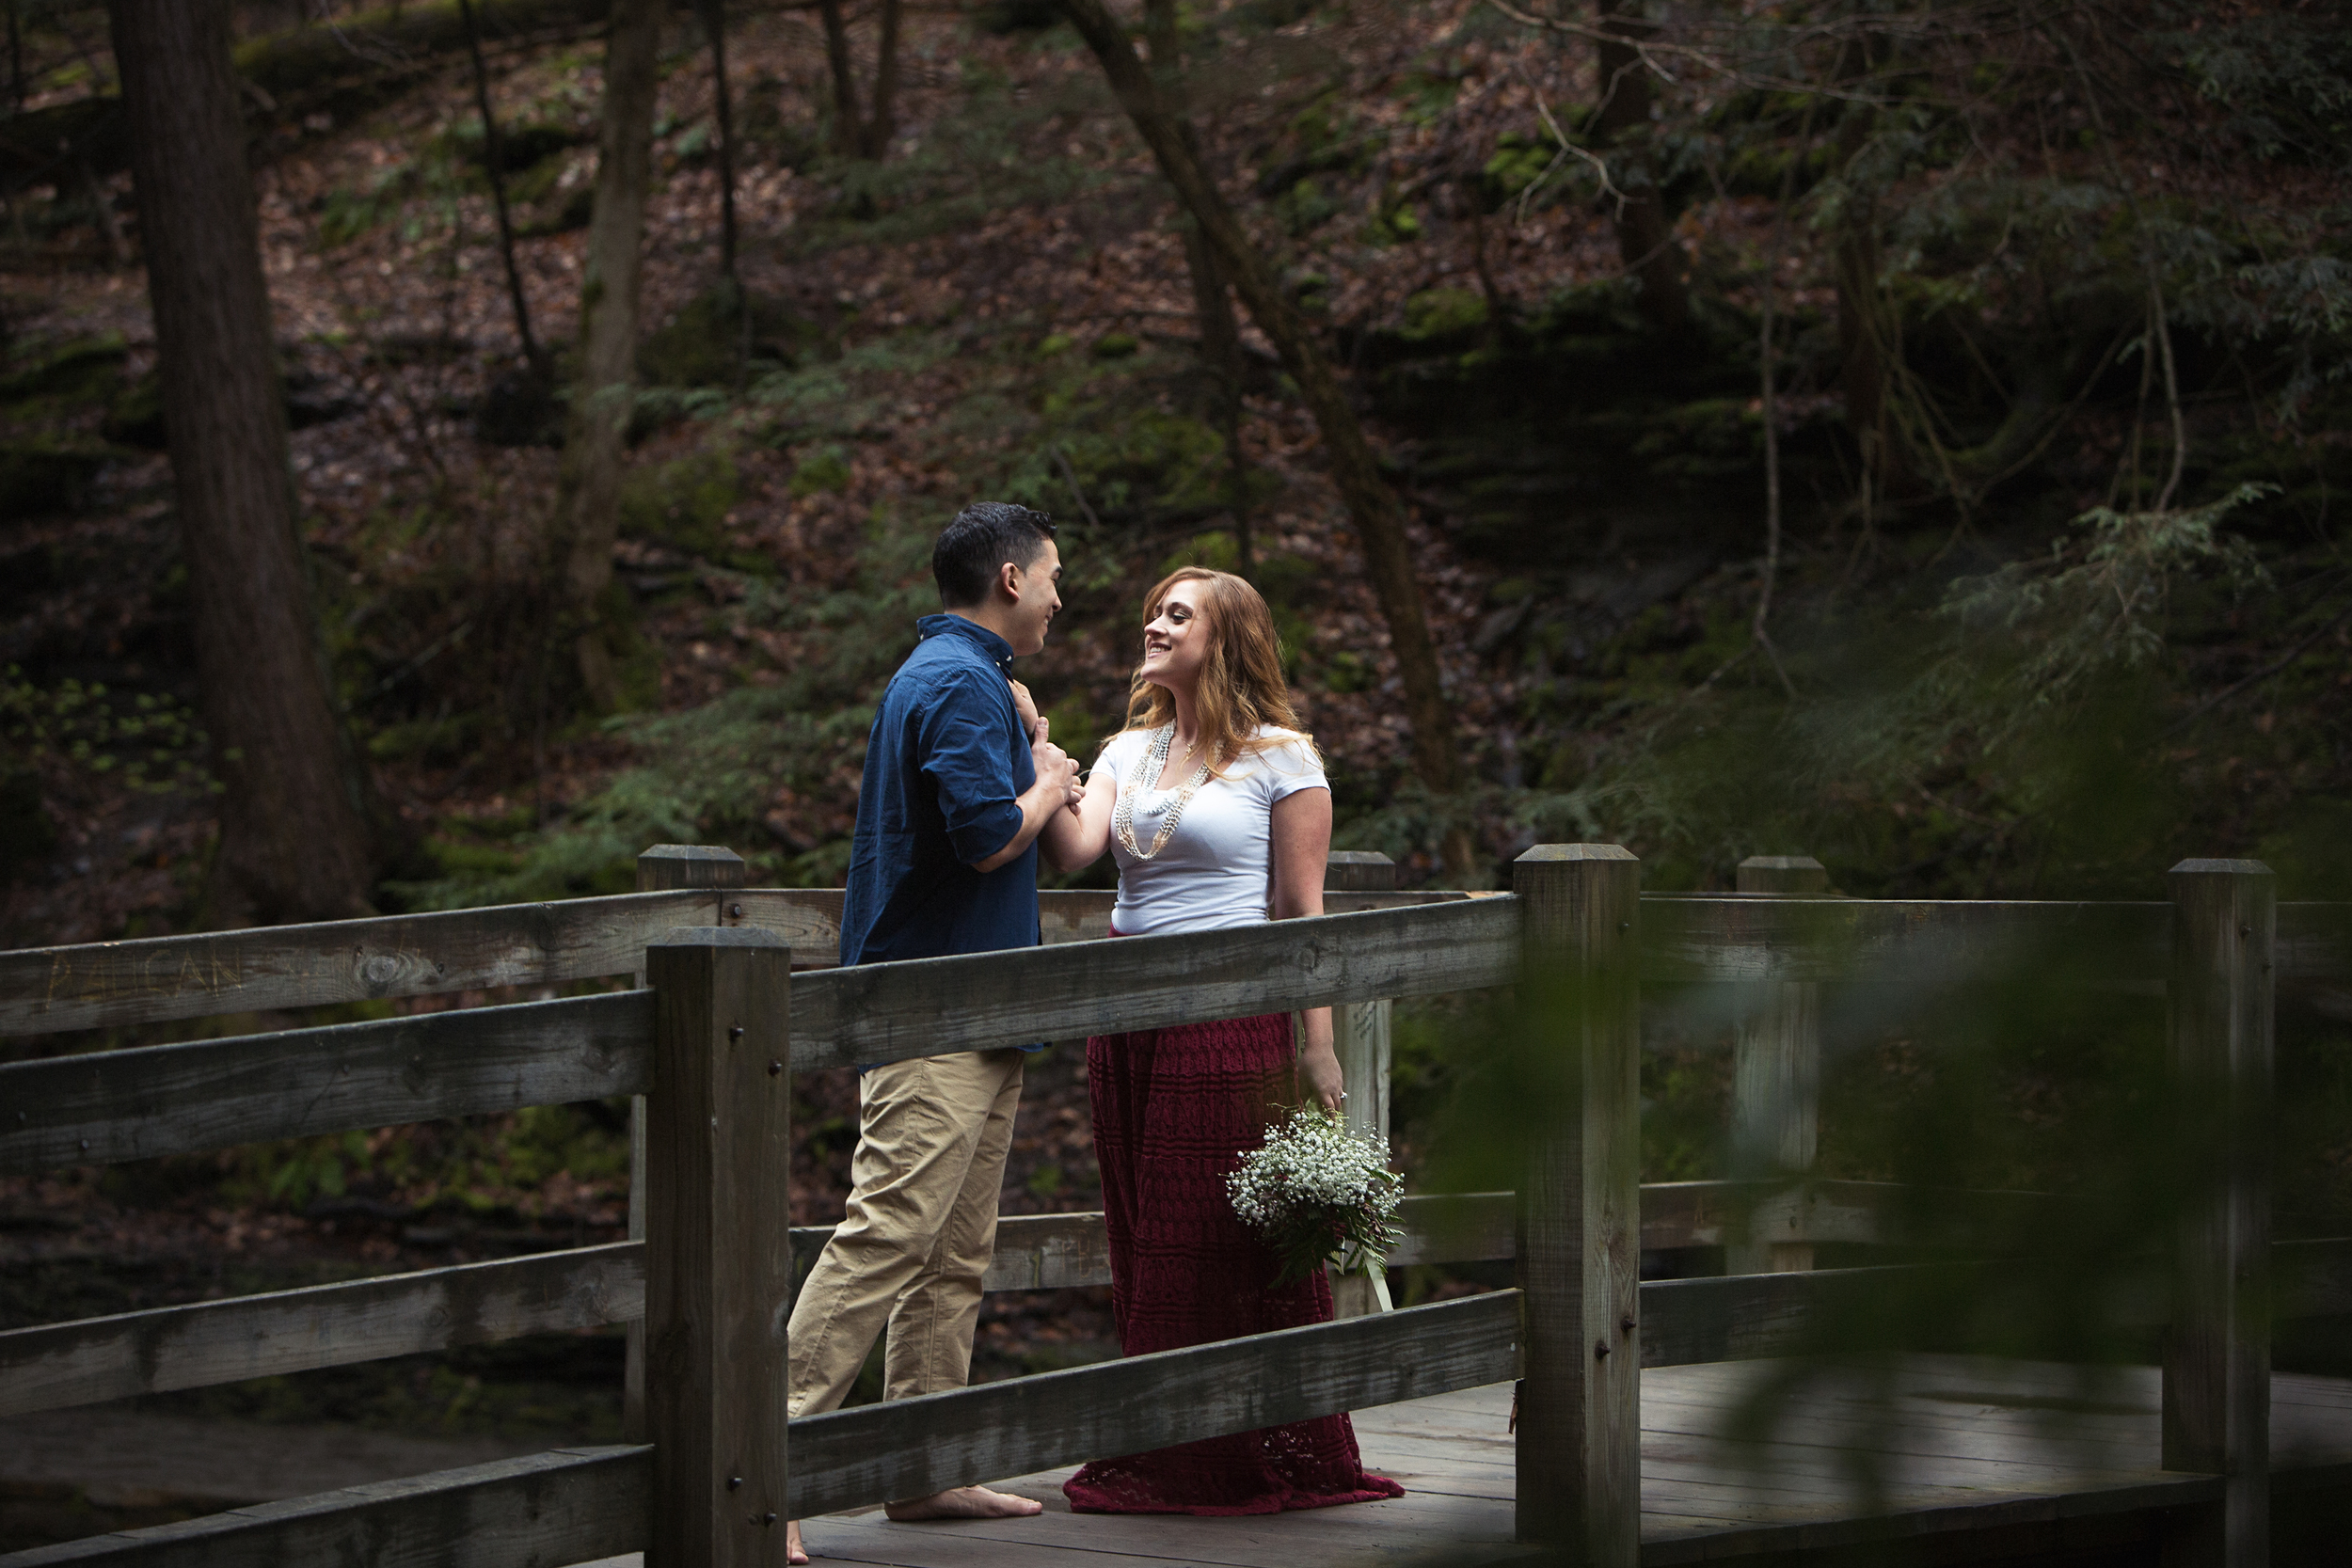 A_J_Engagement_Session_Waterfall_Nick_Natasha_Photography-6.jpg